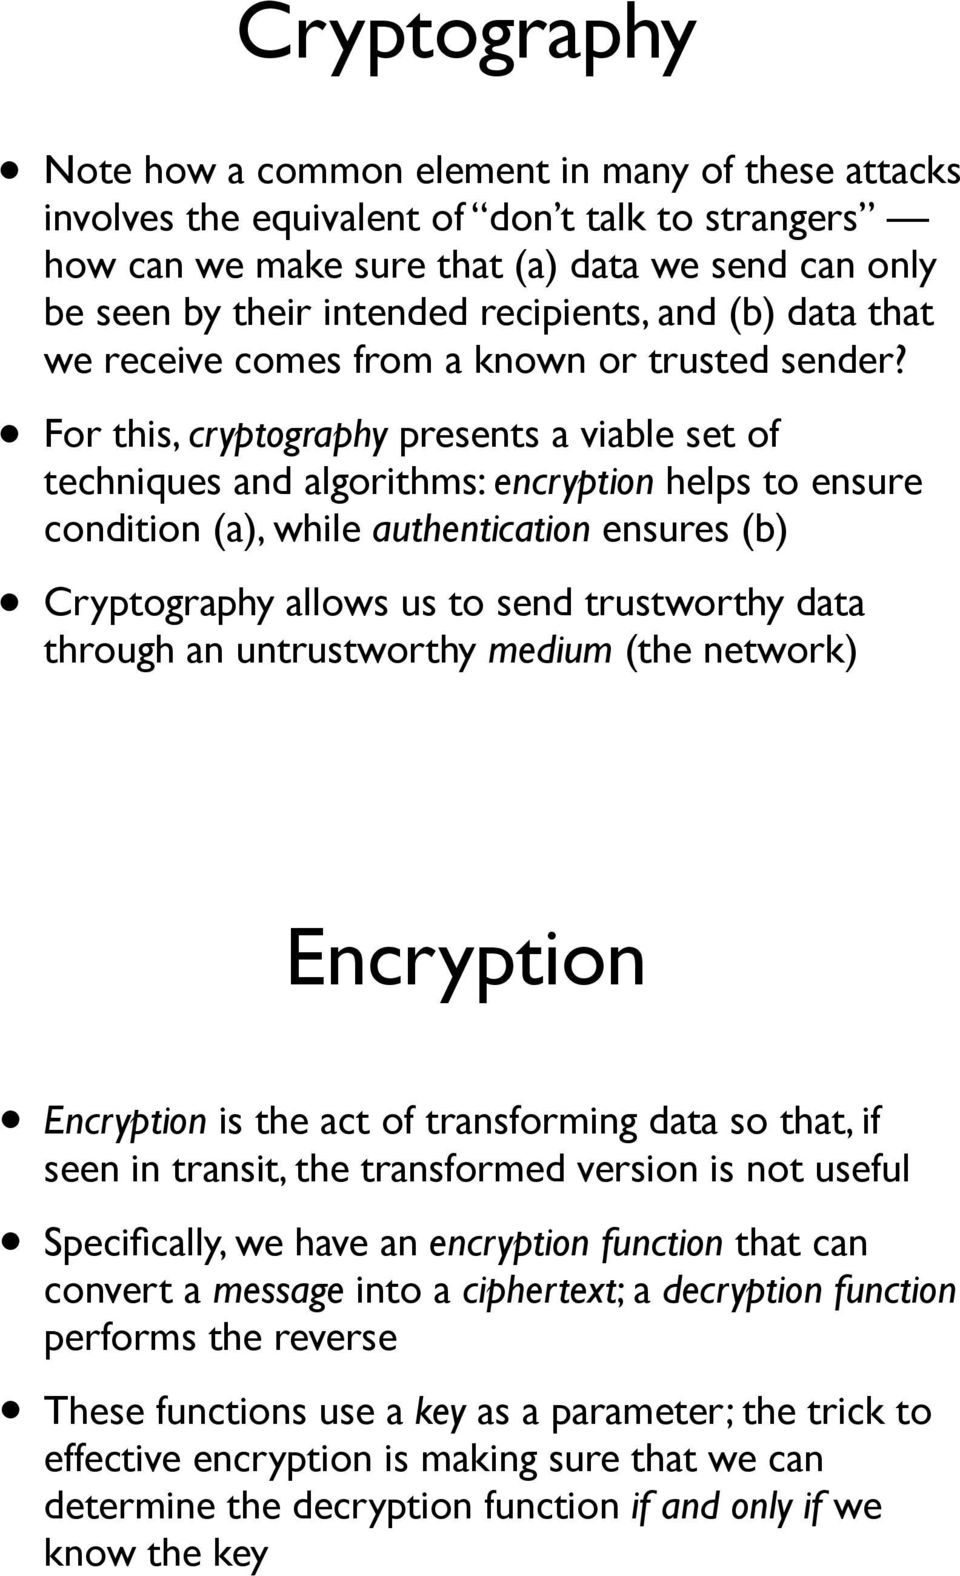 For this, cryptography presents a viable set of techniques and algorithms: encryption helps to ensure condition (a), while authentication ensures (b) Cryptography allows us to send trustworthy data